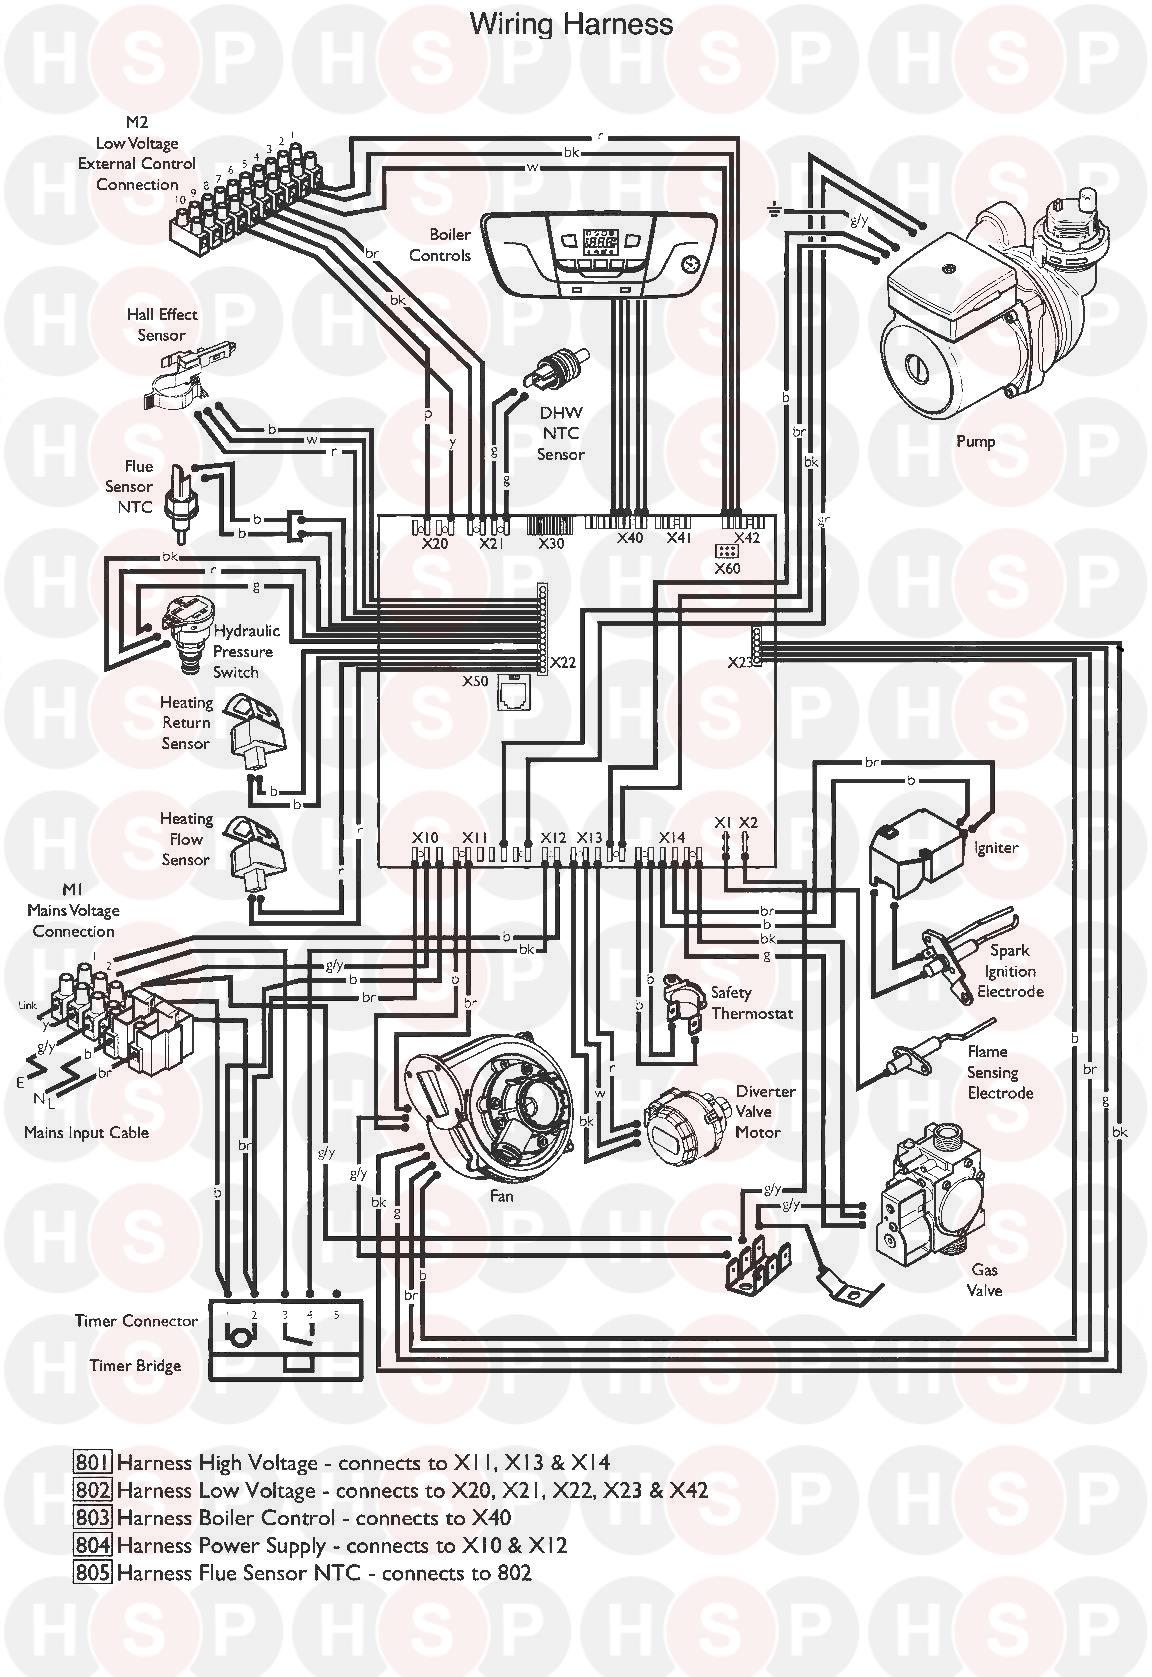 baxi ecoblue 28 combi appliance diagram  wiring harness